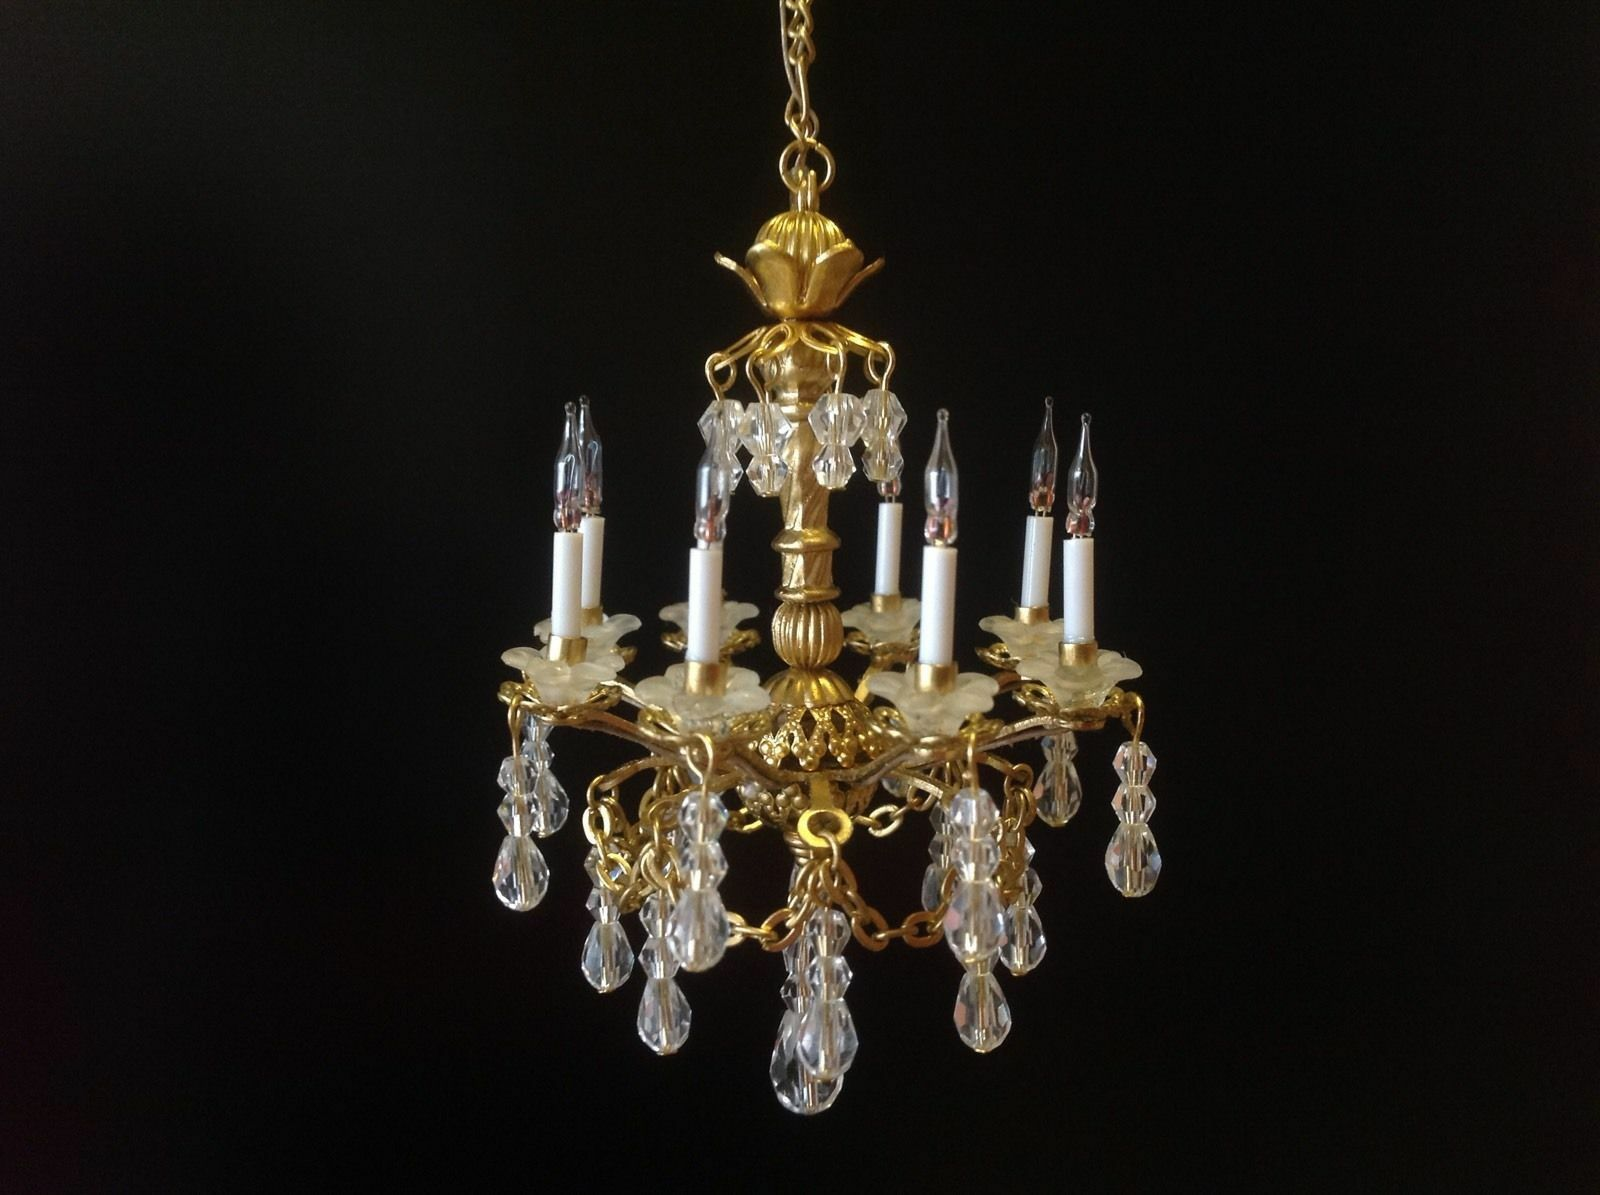 Dollhaus Miniature Handcrafted 8 Arm Crystal Chandelier 12V 1 12 Scale